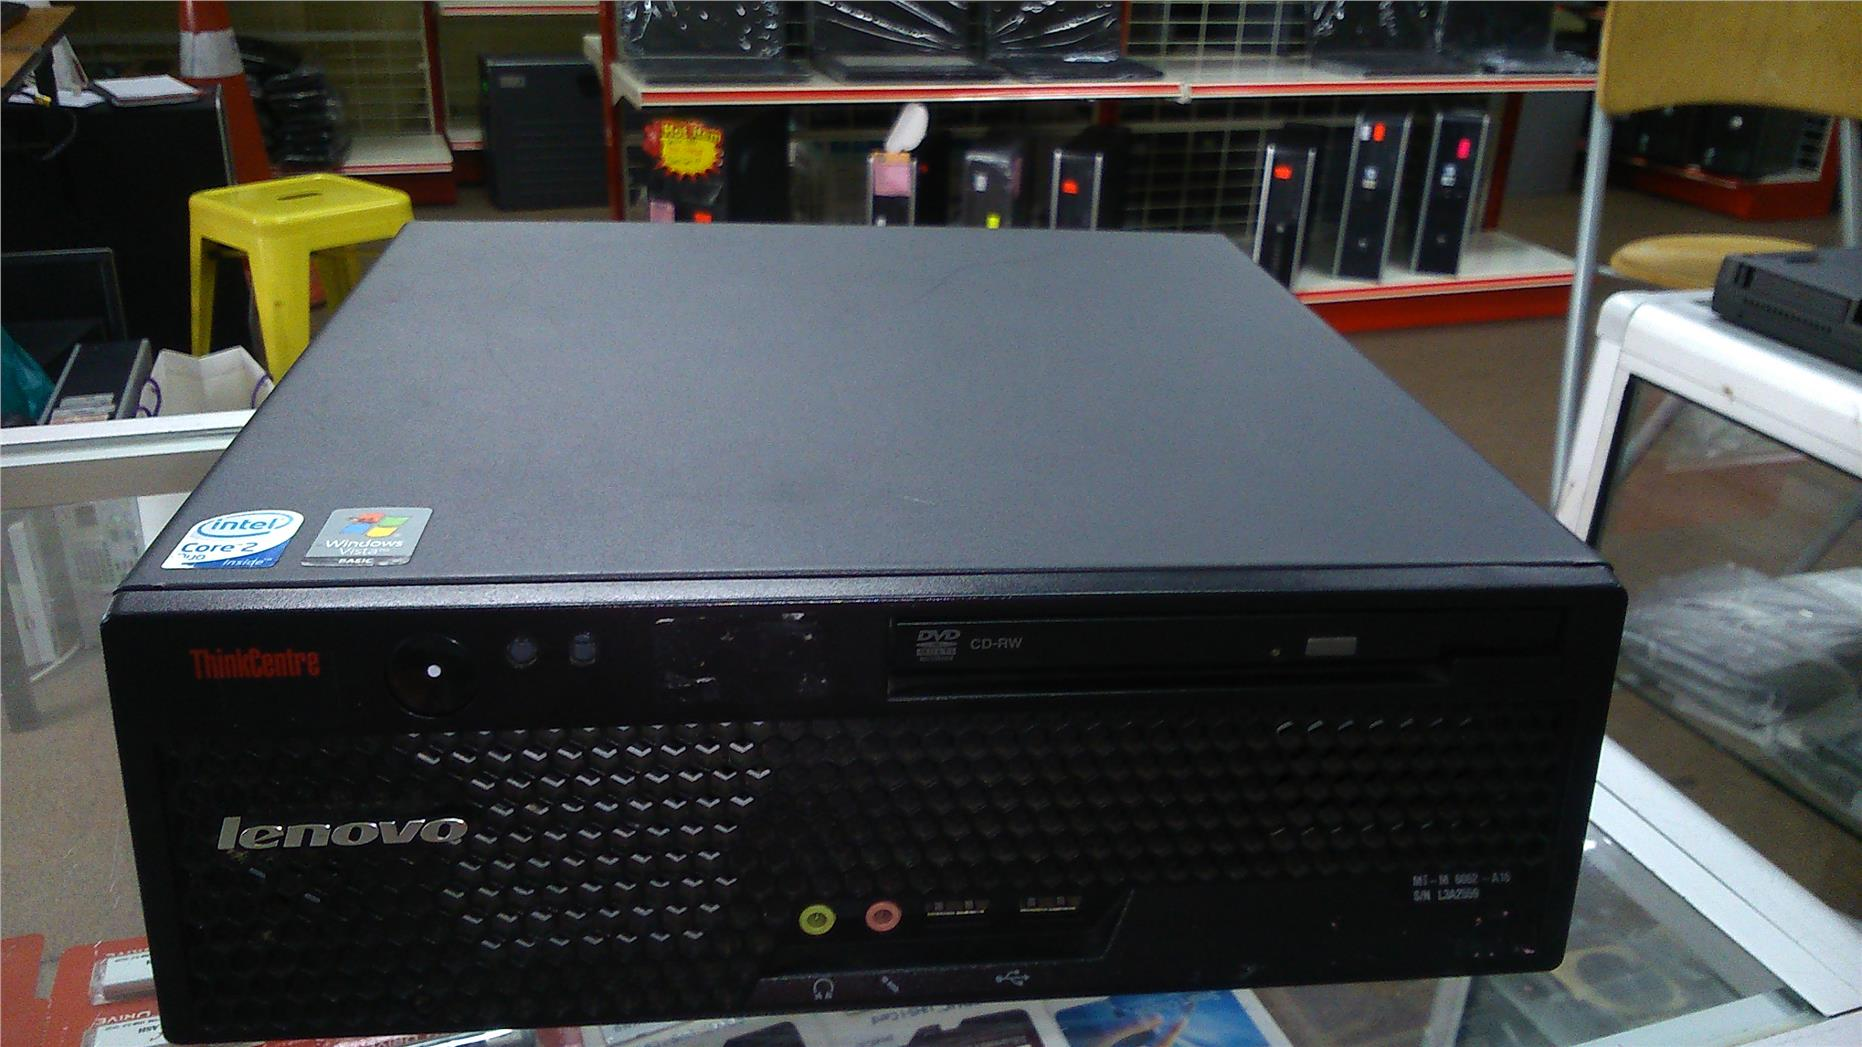 LENOVO Thinkcenter M57 C2D E7500 2.93Ghz 2GB / 160GB - Win VISTA